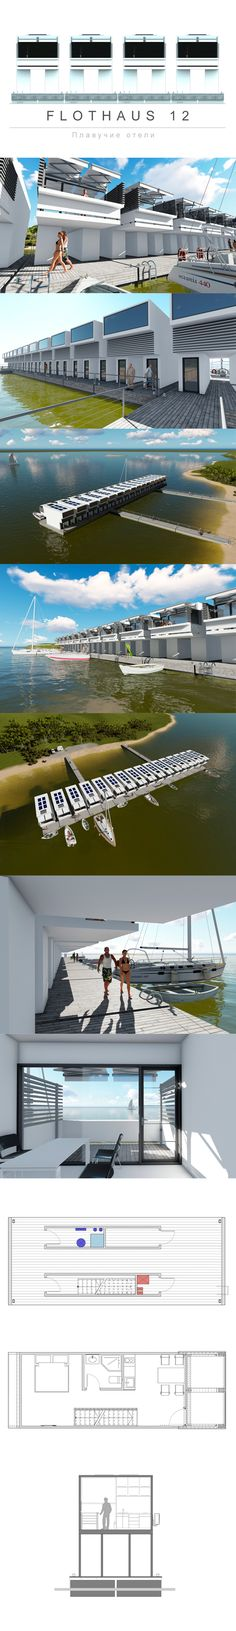 FLOATING HOUSES. THE HOTEL. APARTMENTS. Architectural workshop EFREMOFF and PARTNERS.